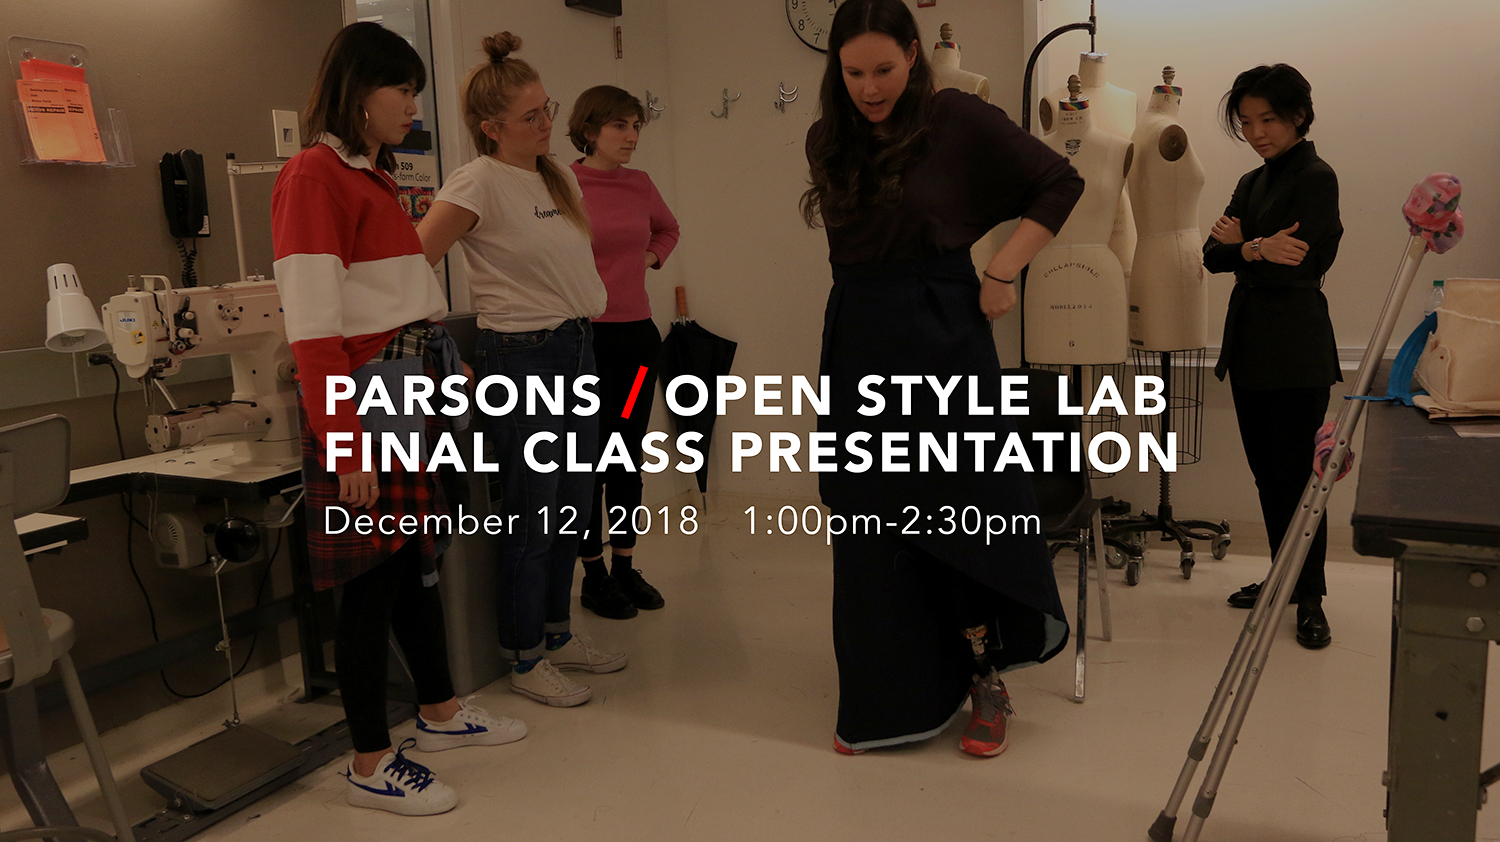 Final Showcase: Open Style Lab Fall Course at The New School, Parsons School of Design